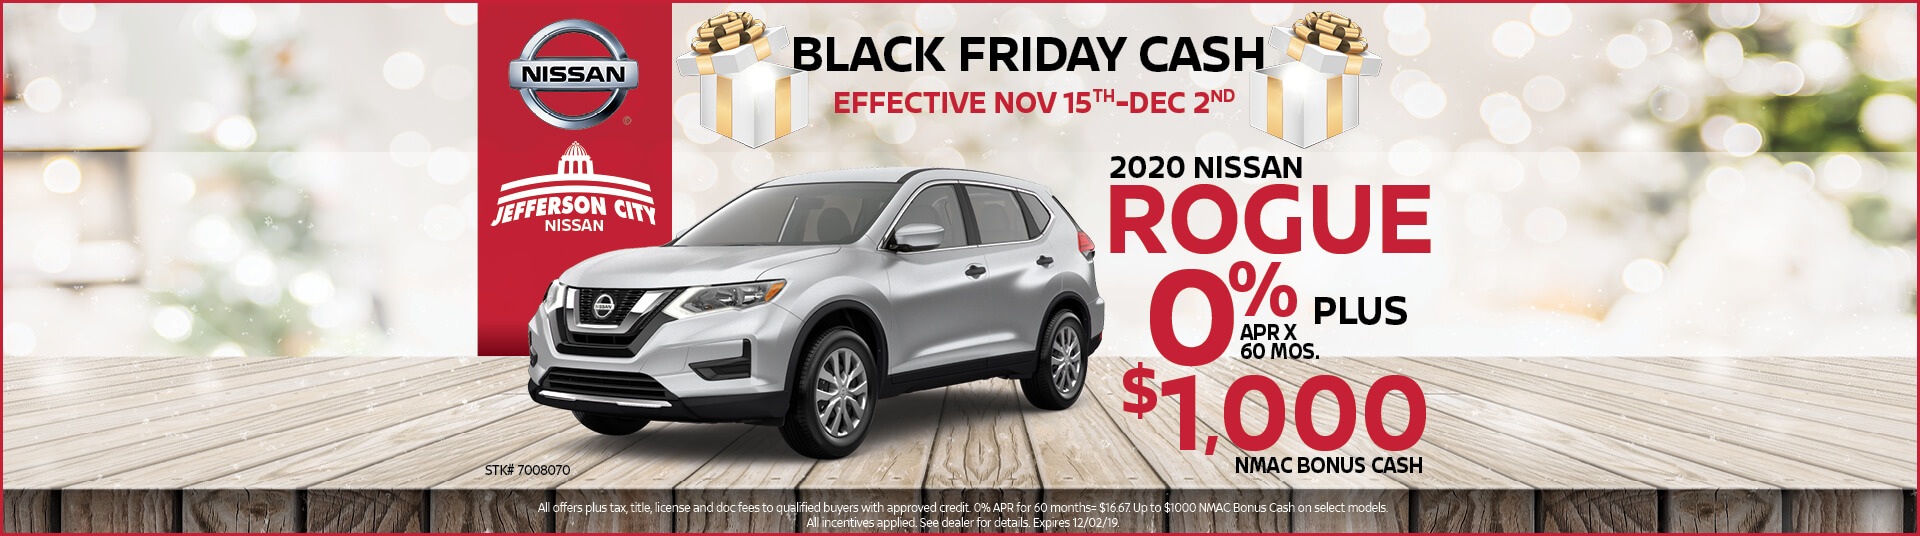 Get 0% APR x mos. + up to $1,000 in Nissan Rebates on a 2020 Nissan Rogue